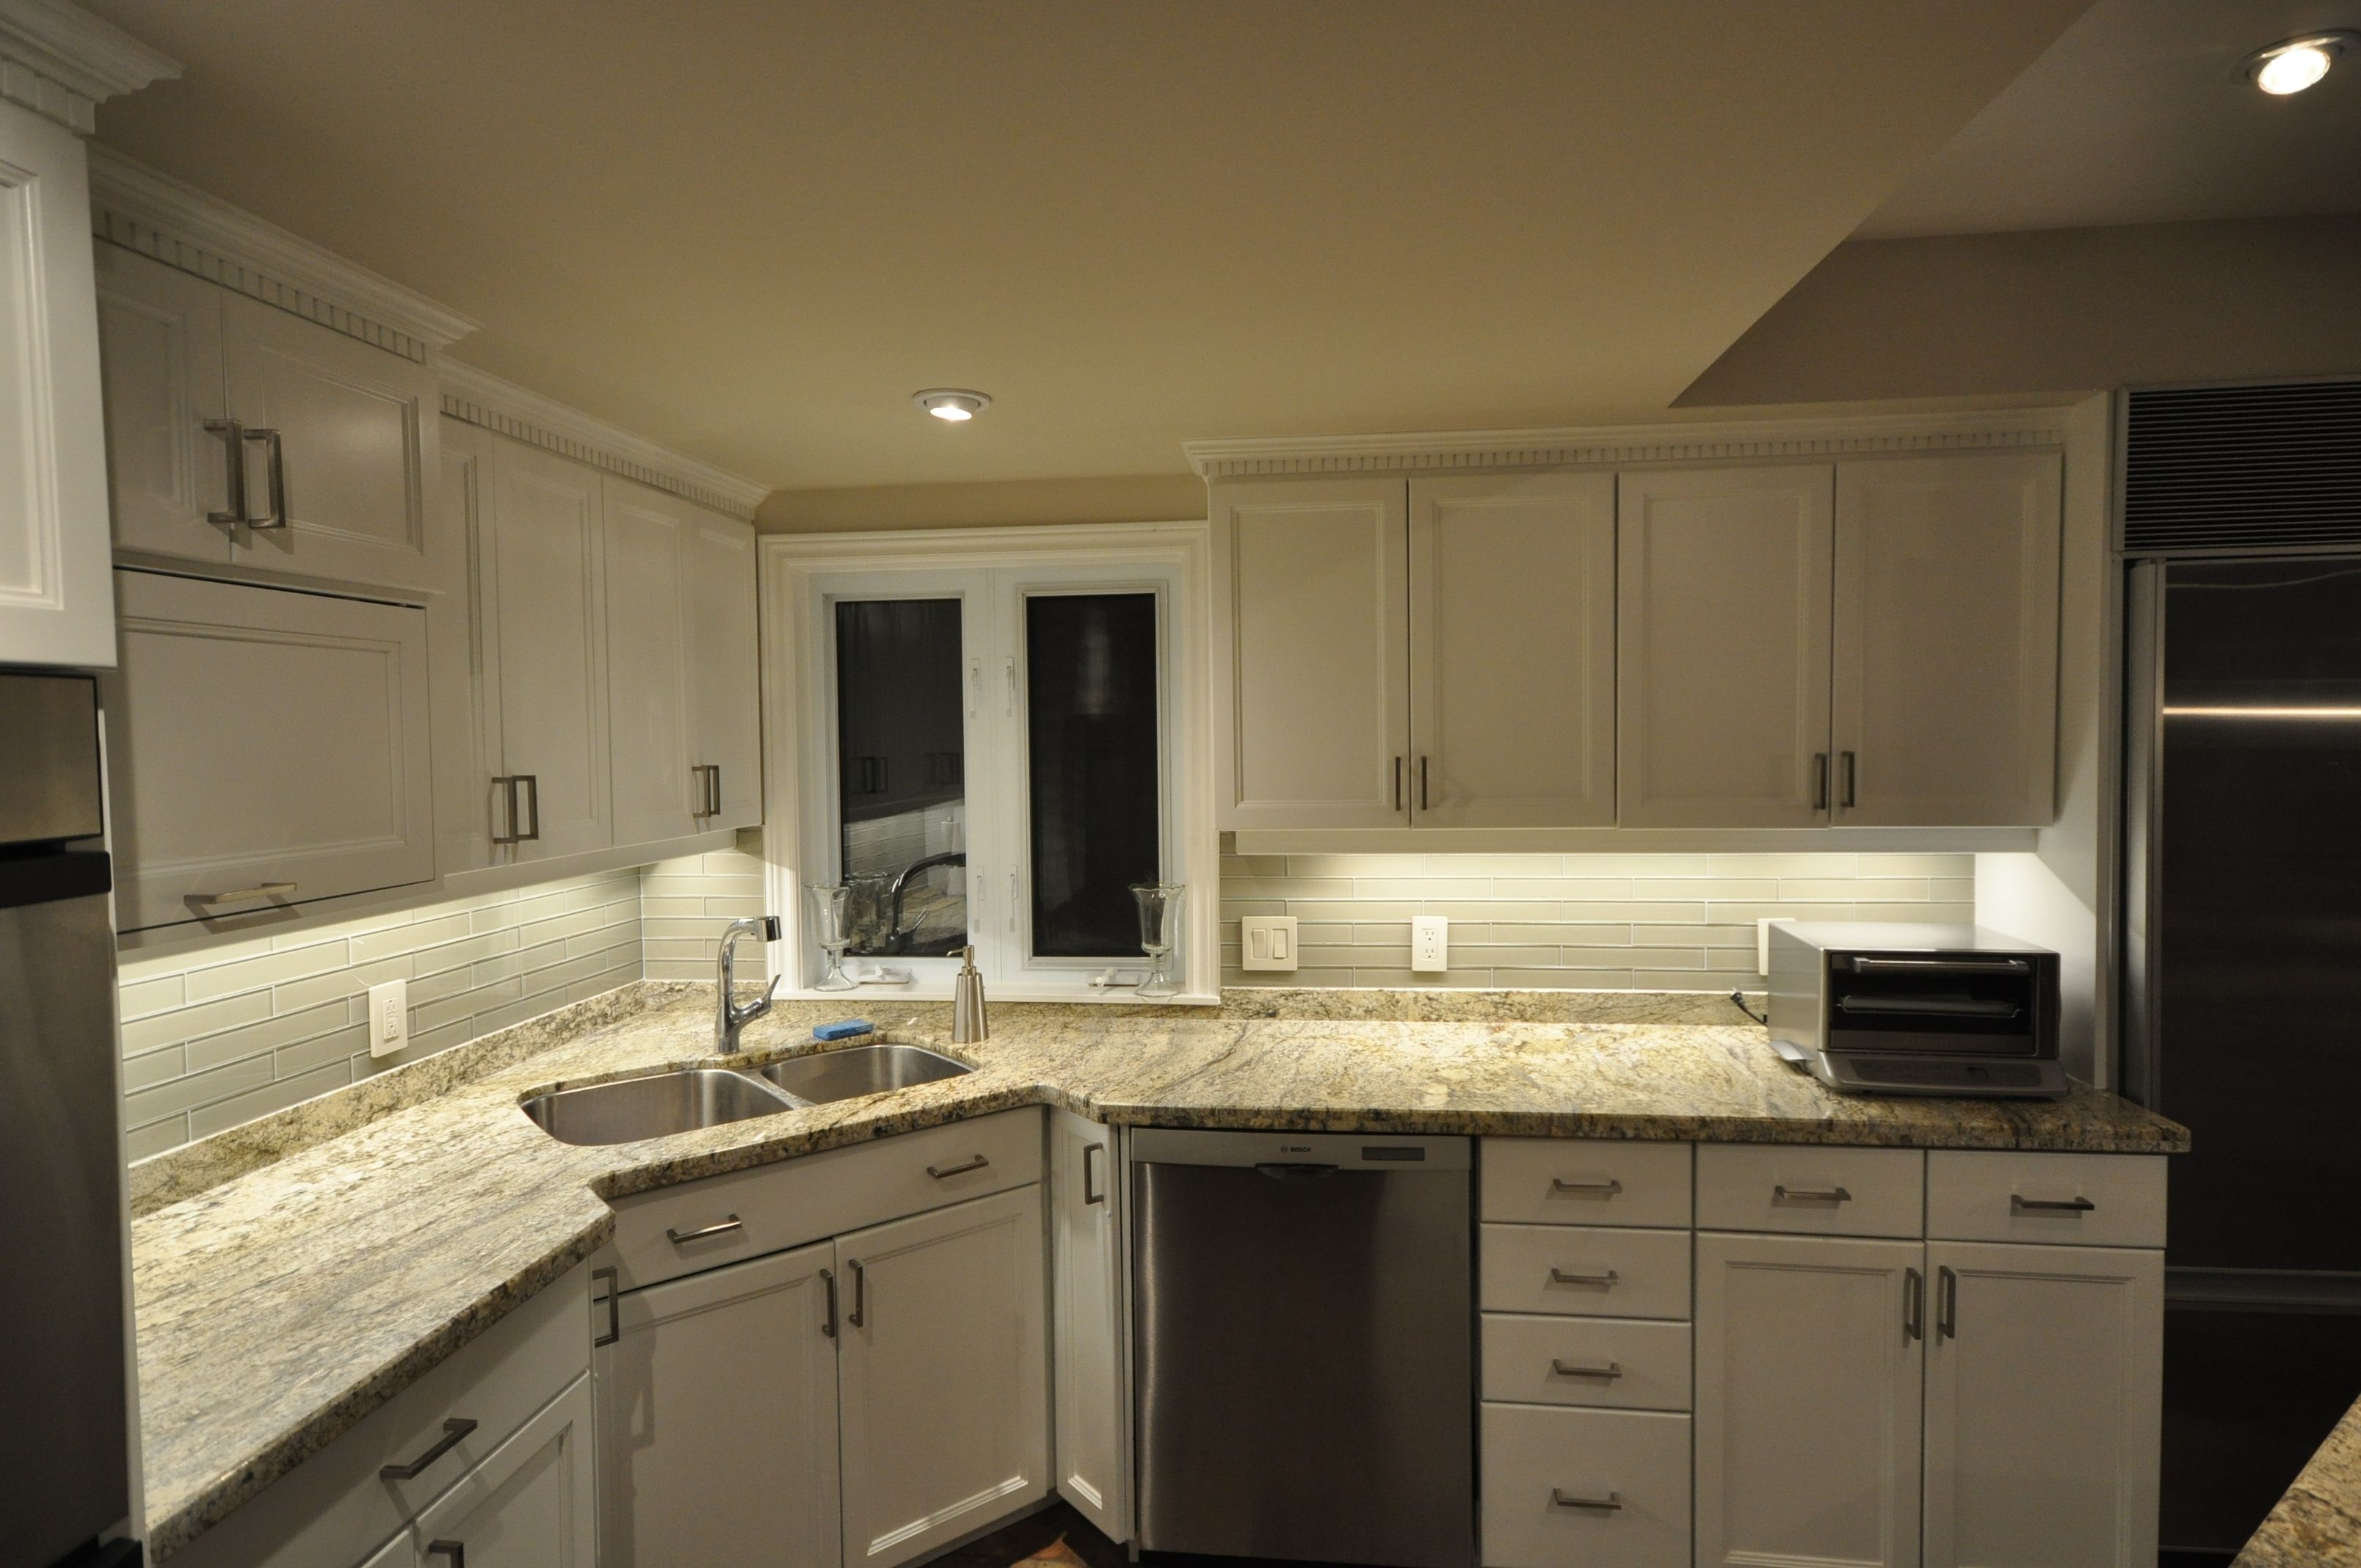 Led Tape Kitchen Remodeling Virginia Beach Lights For Under Cabinets Http Sinhvienthienan